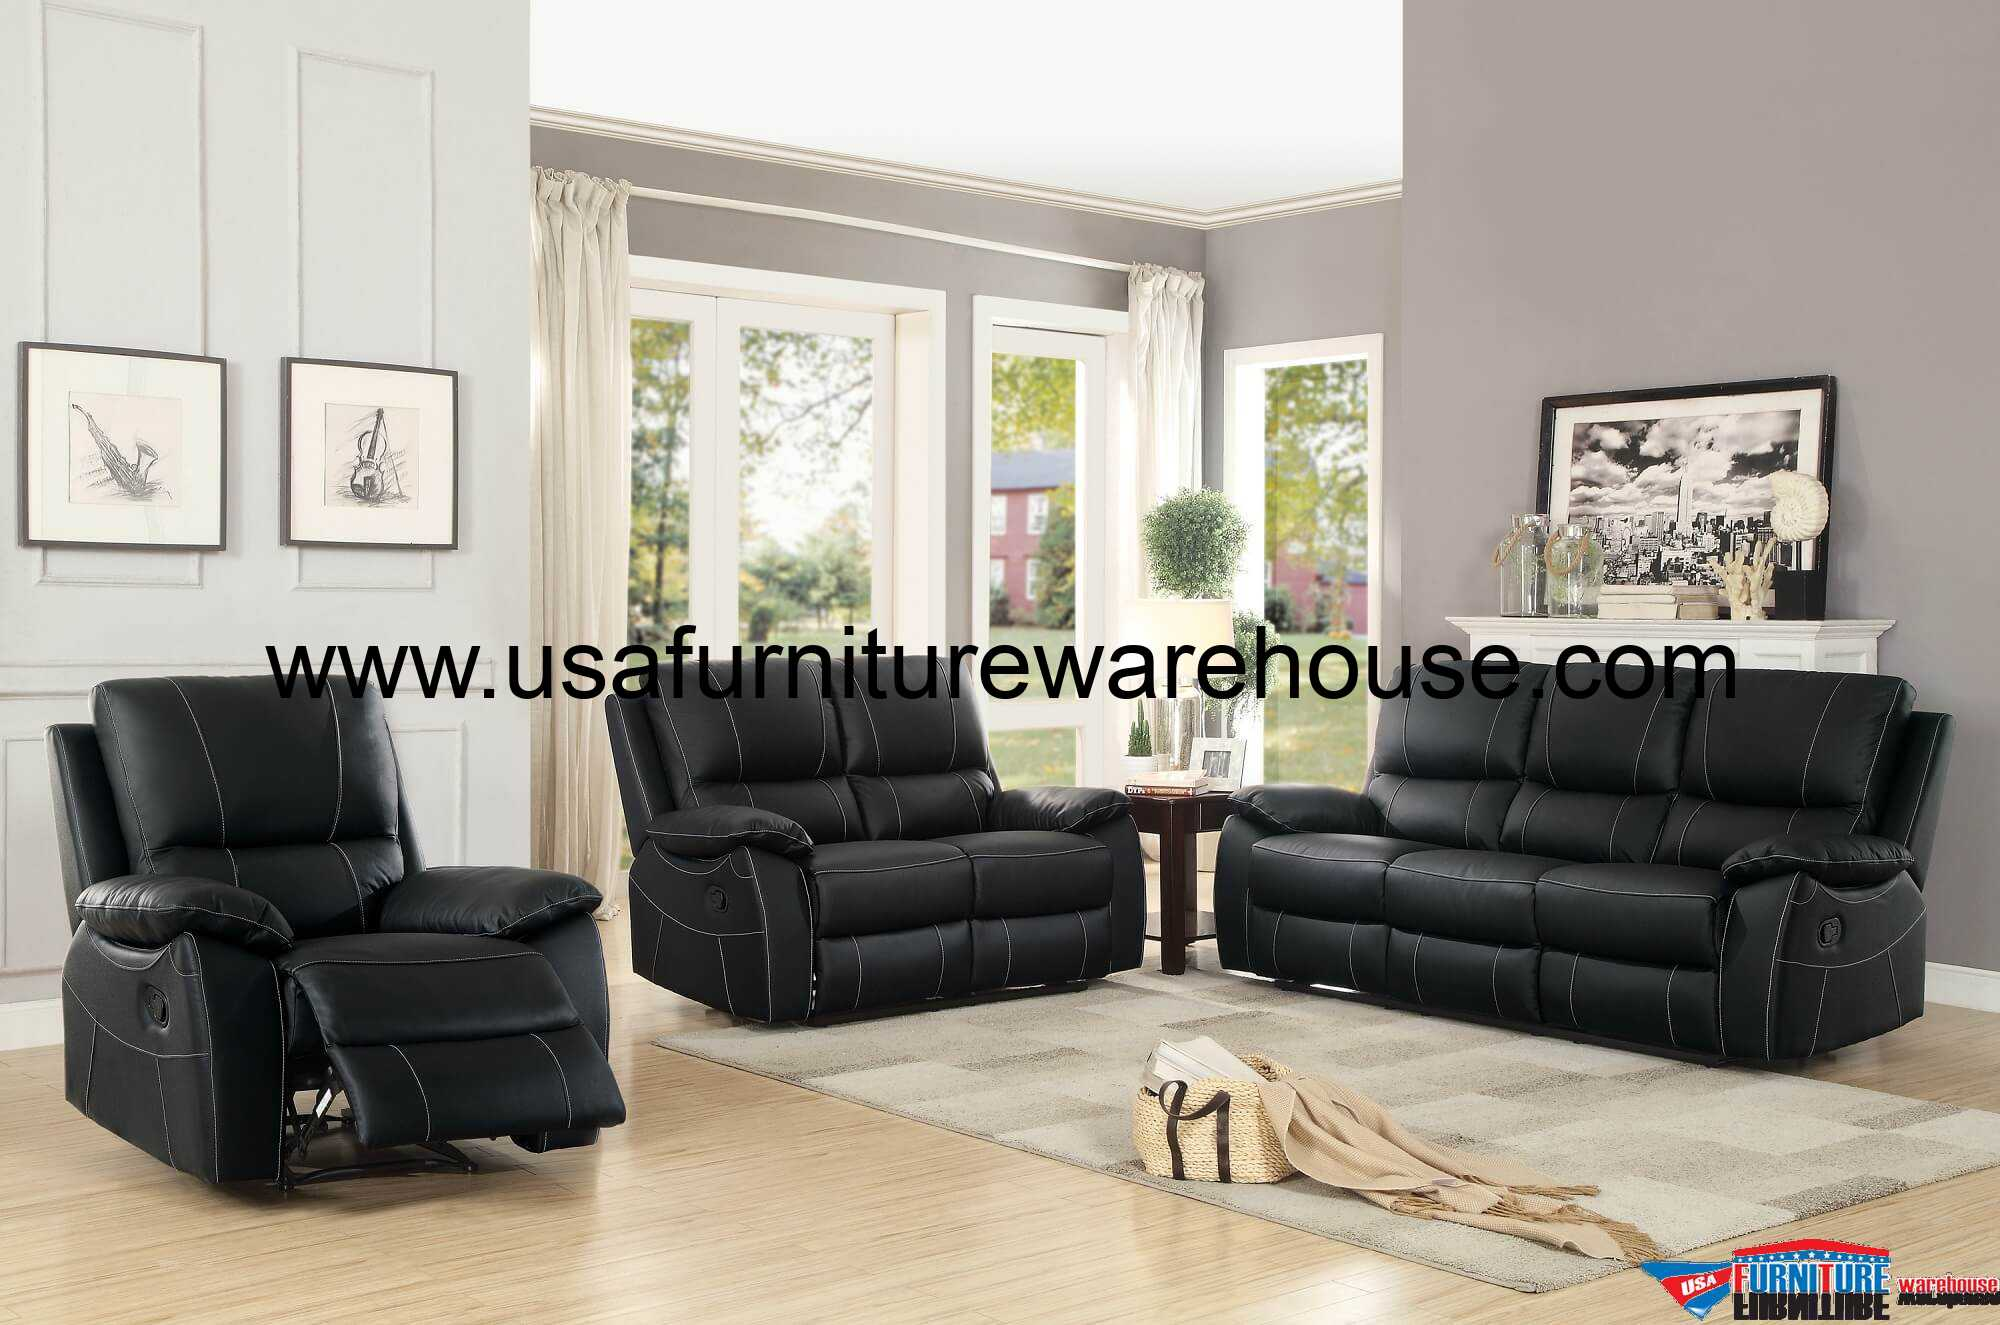 Homelegance Greeley Top Grain Black Leather Reclining Sofa Set